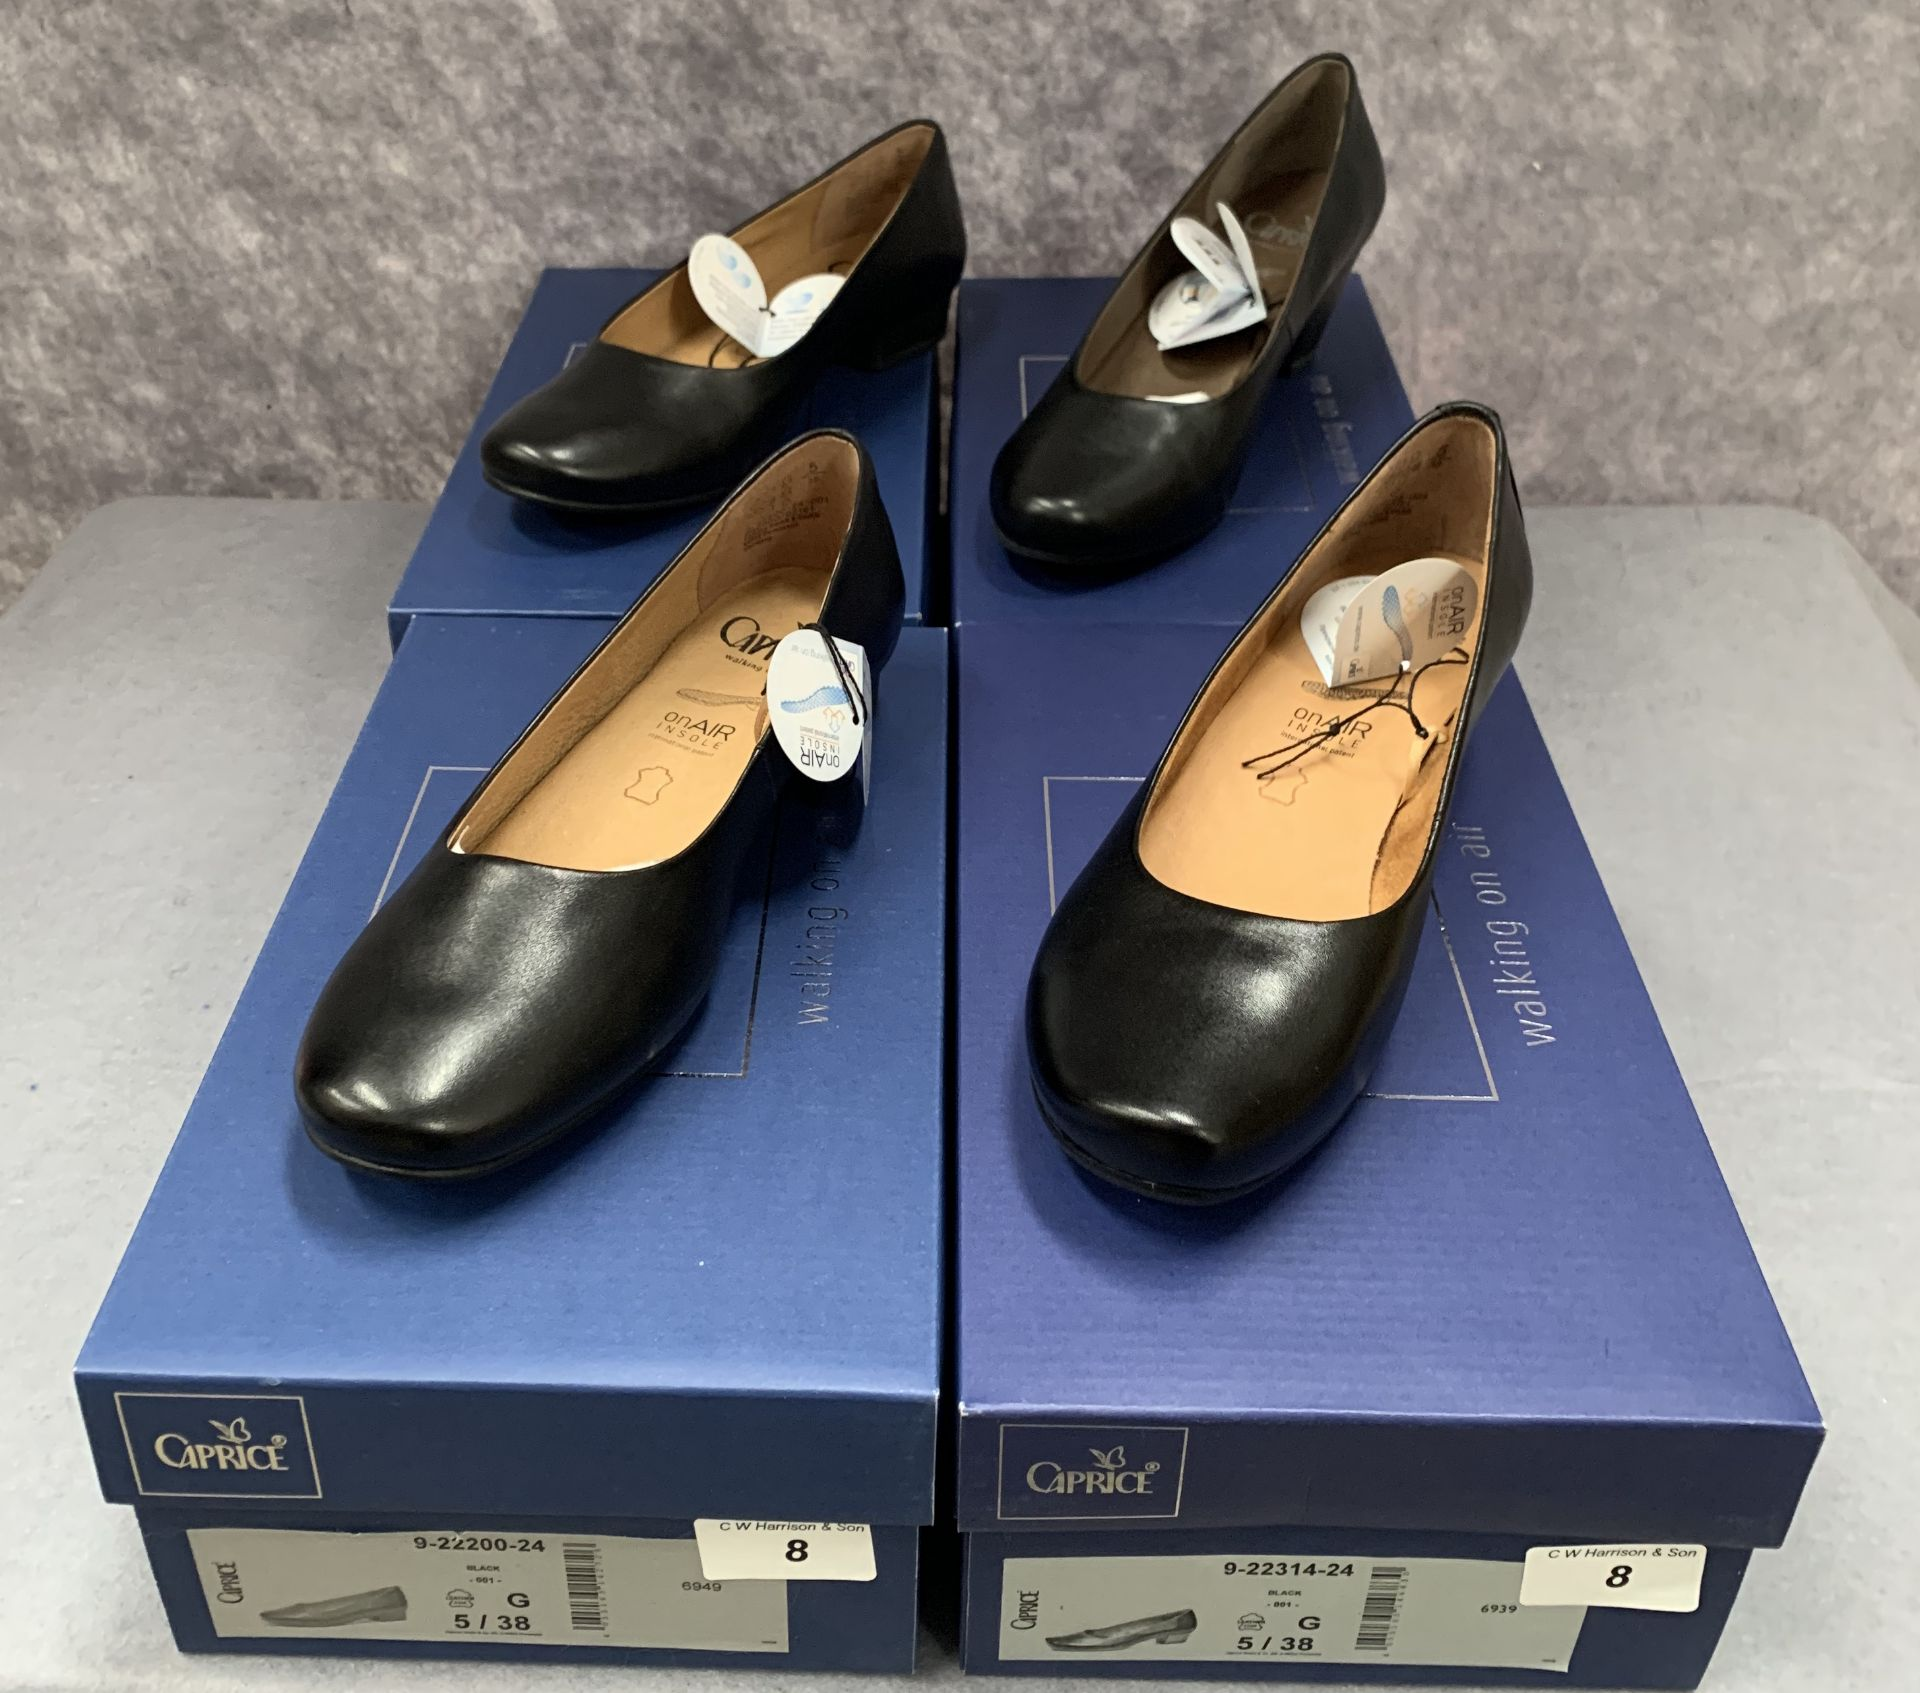 Lot 8 - Four pairs of Caprice ladies shoes in black, various styles, size 5, retail price £59.